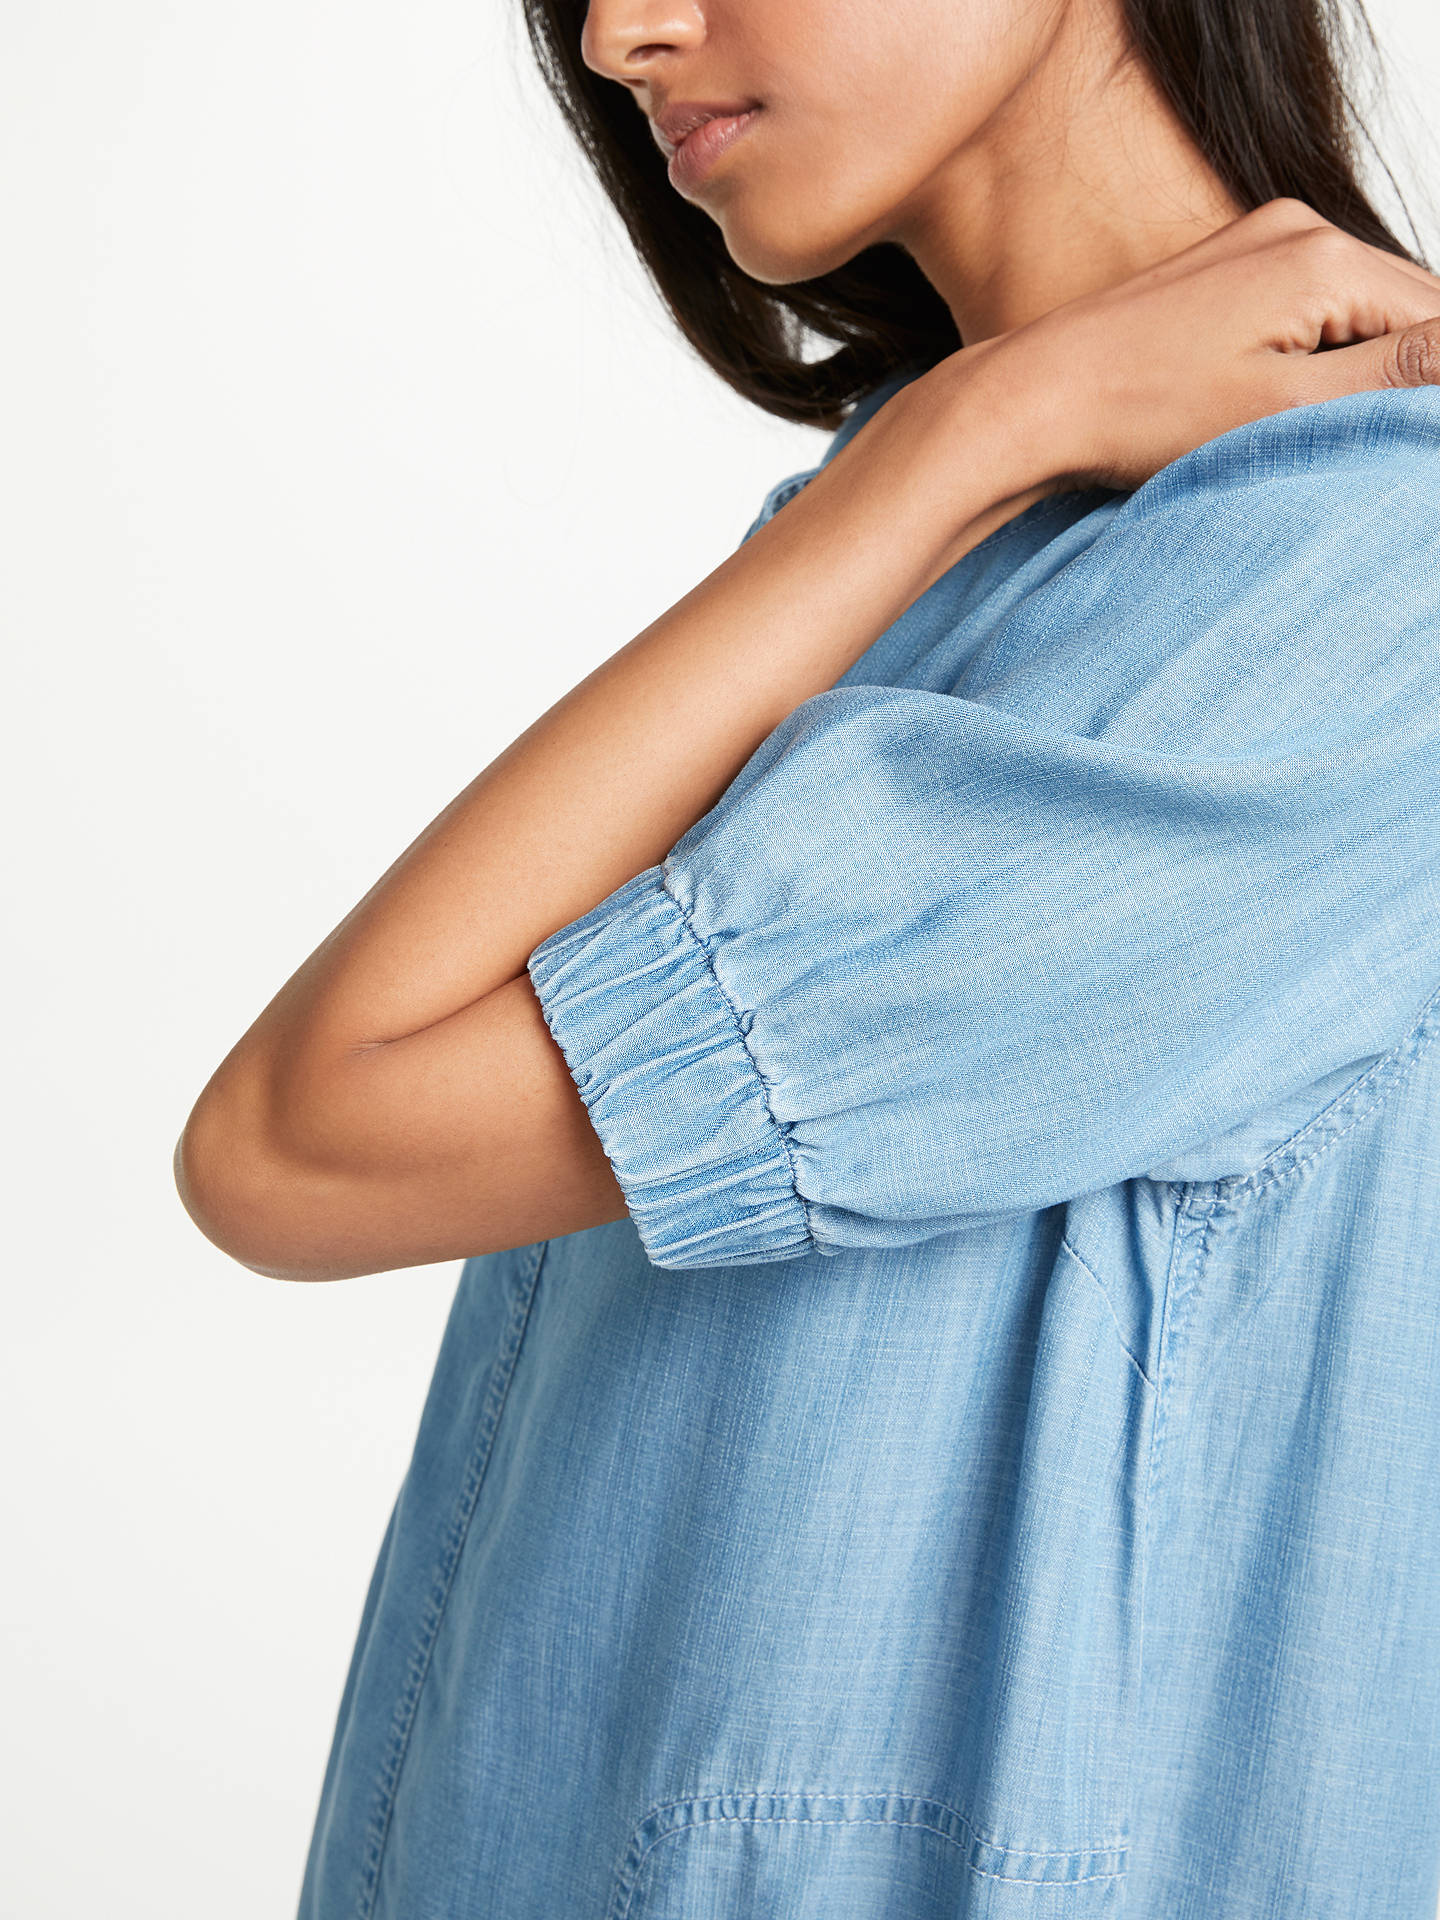 BuyAND/OR Sleeve Detail Dress, Blue, 8 Online at johnlewis.com